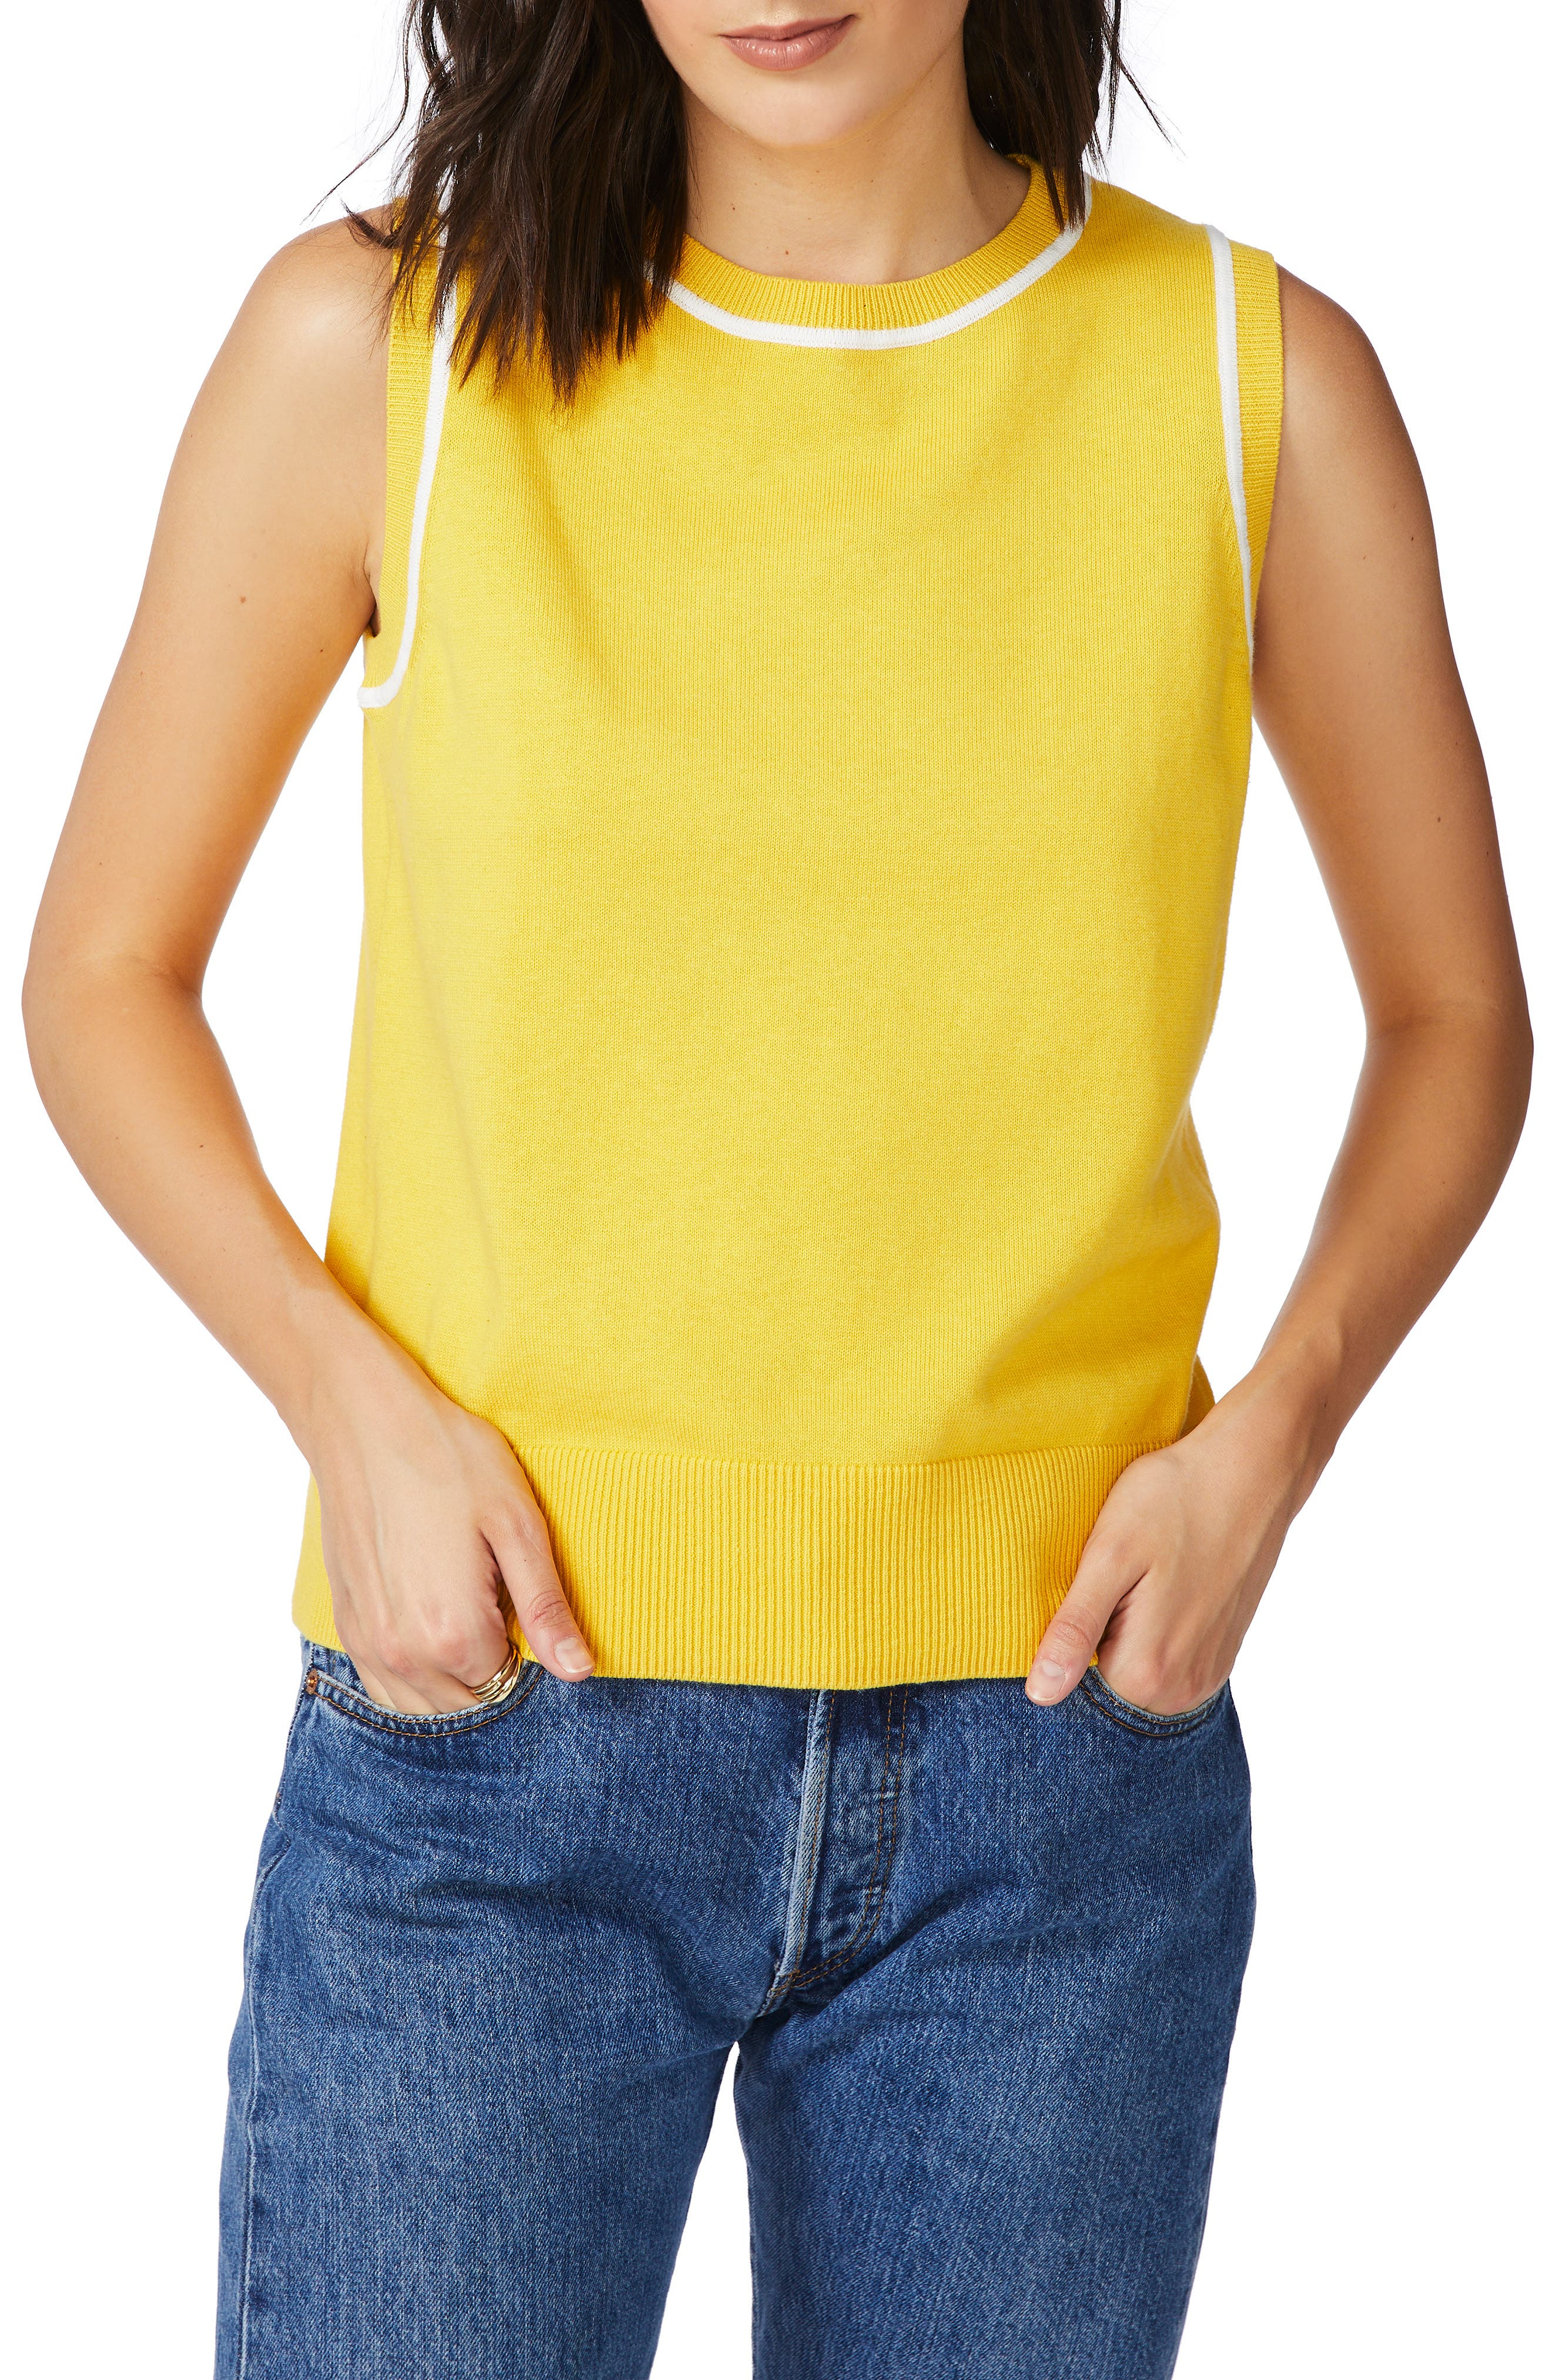 60s Shirts, T-shirts, Blouses, Hippie Shirts Womens Court  Rowe Tipped Cotton  Silk Sleeveless Sweater Size XX-Large - Yellow $69.00 AT vintagedancer.com